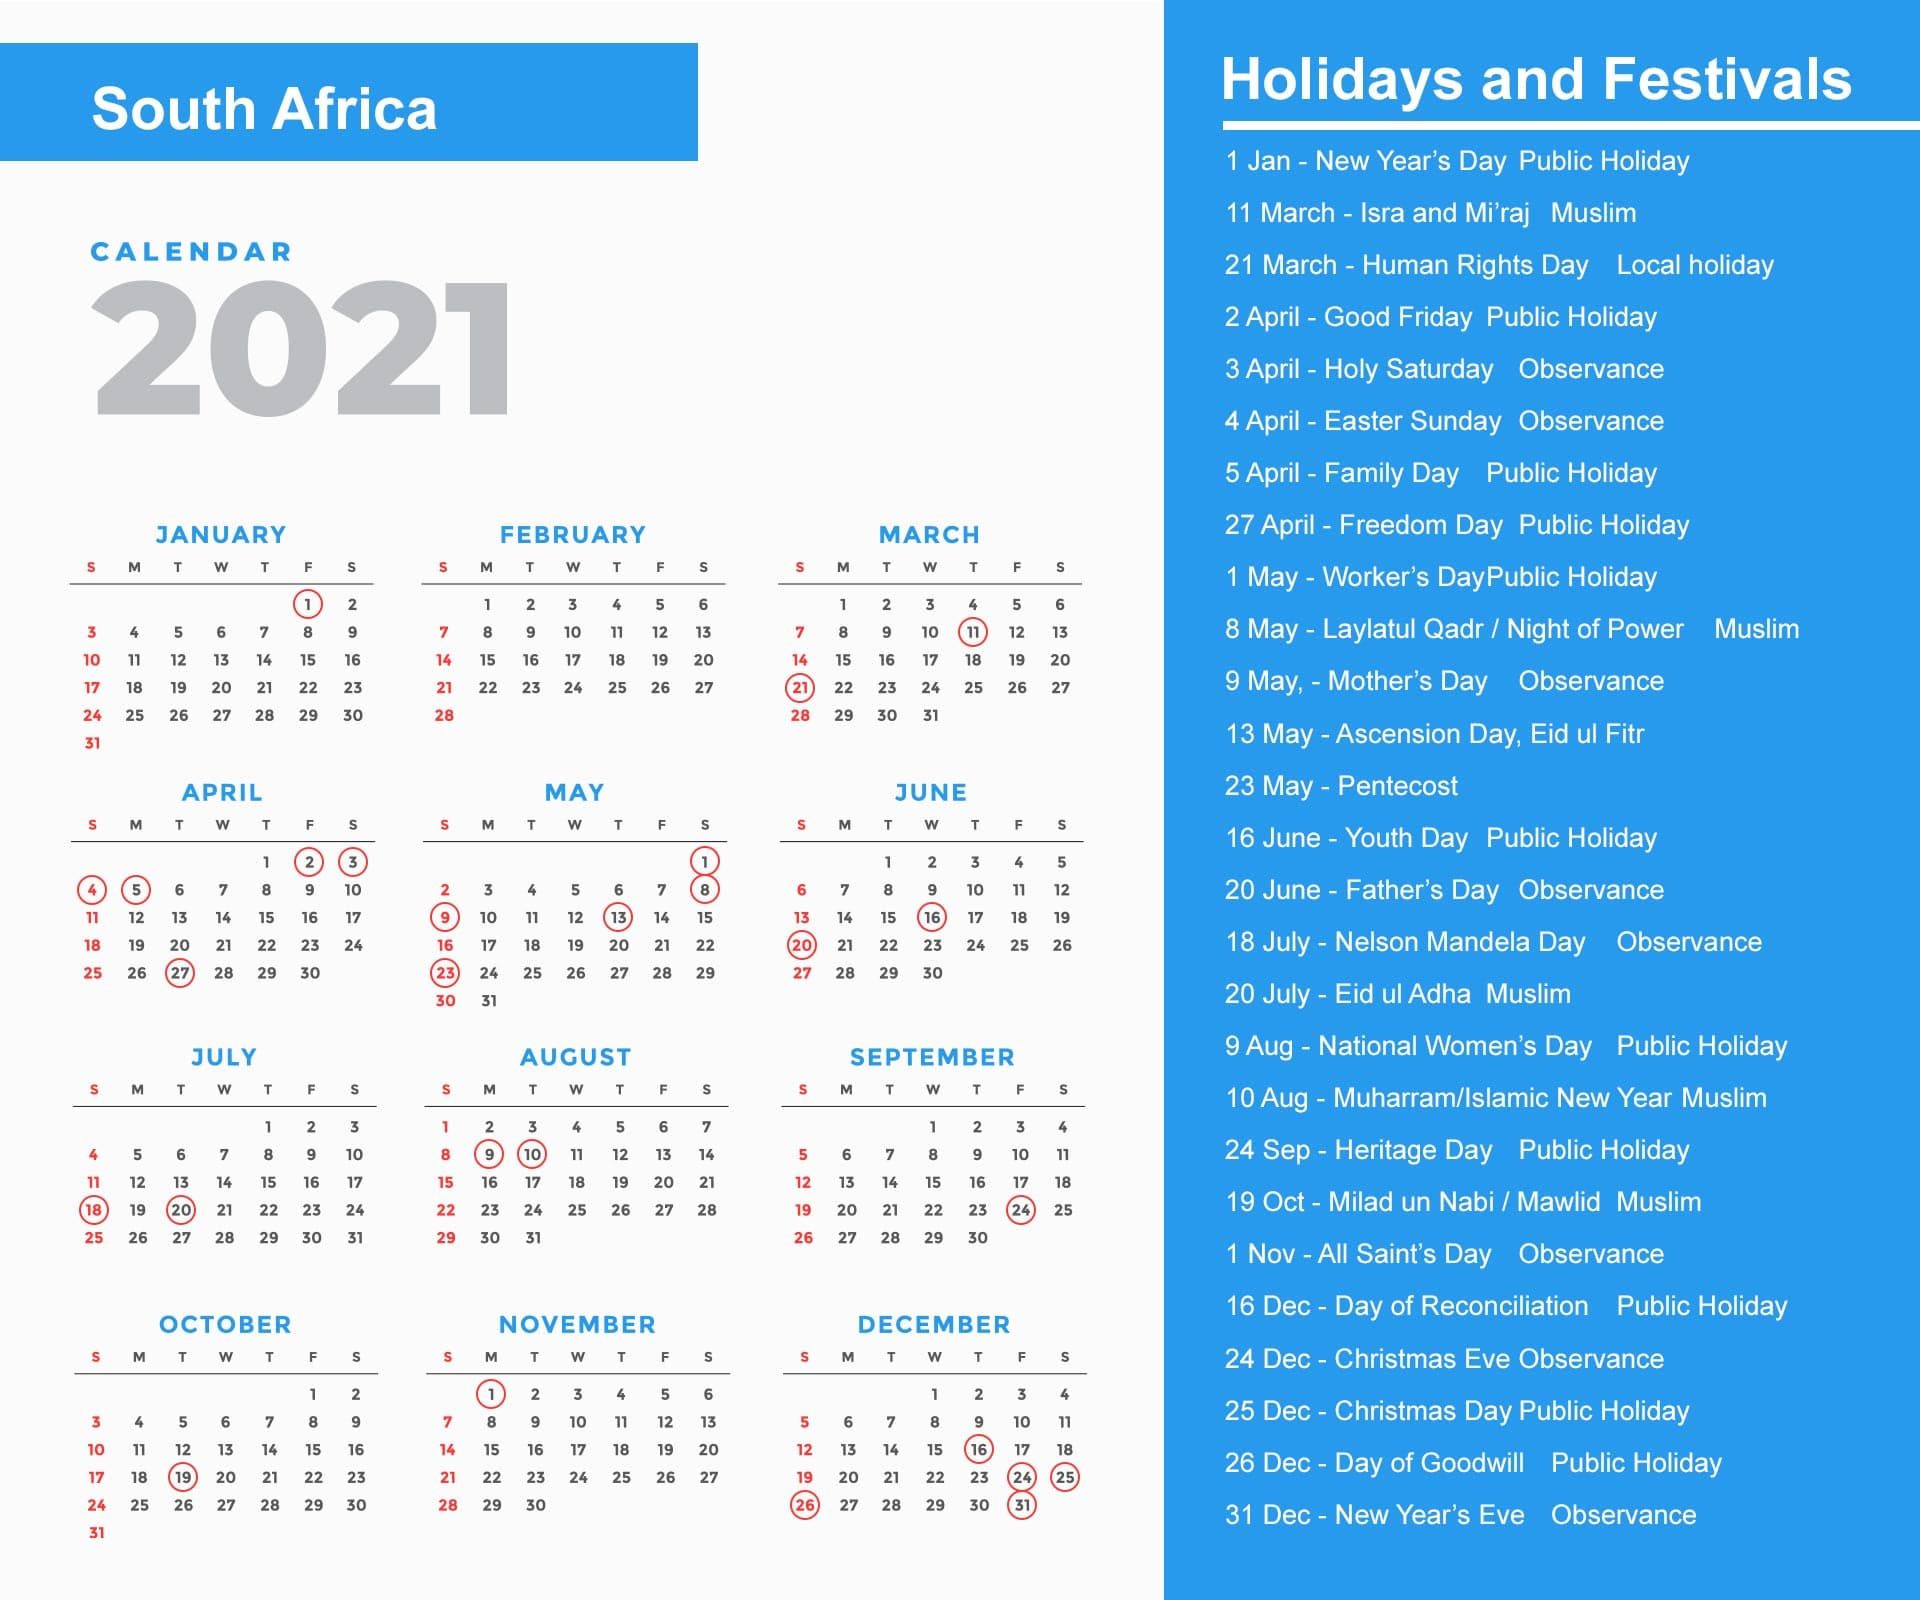 South Africa Holidays Calendar 2021